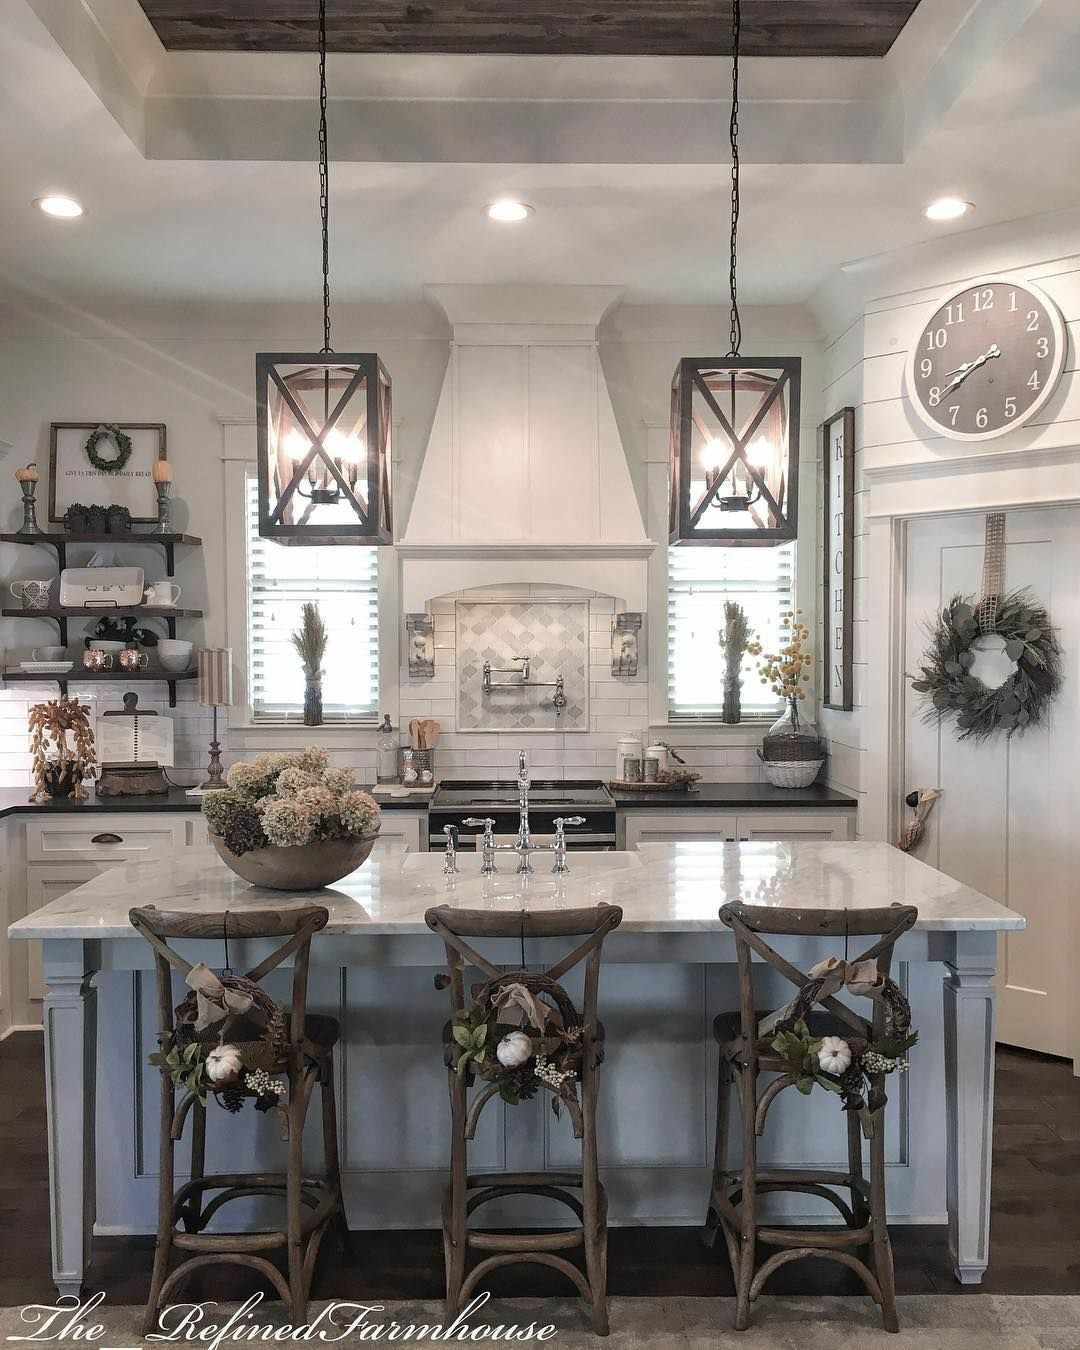 Pin by Amy Purser Armstrong on Dream Kitchen in 2020